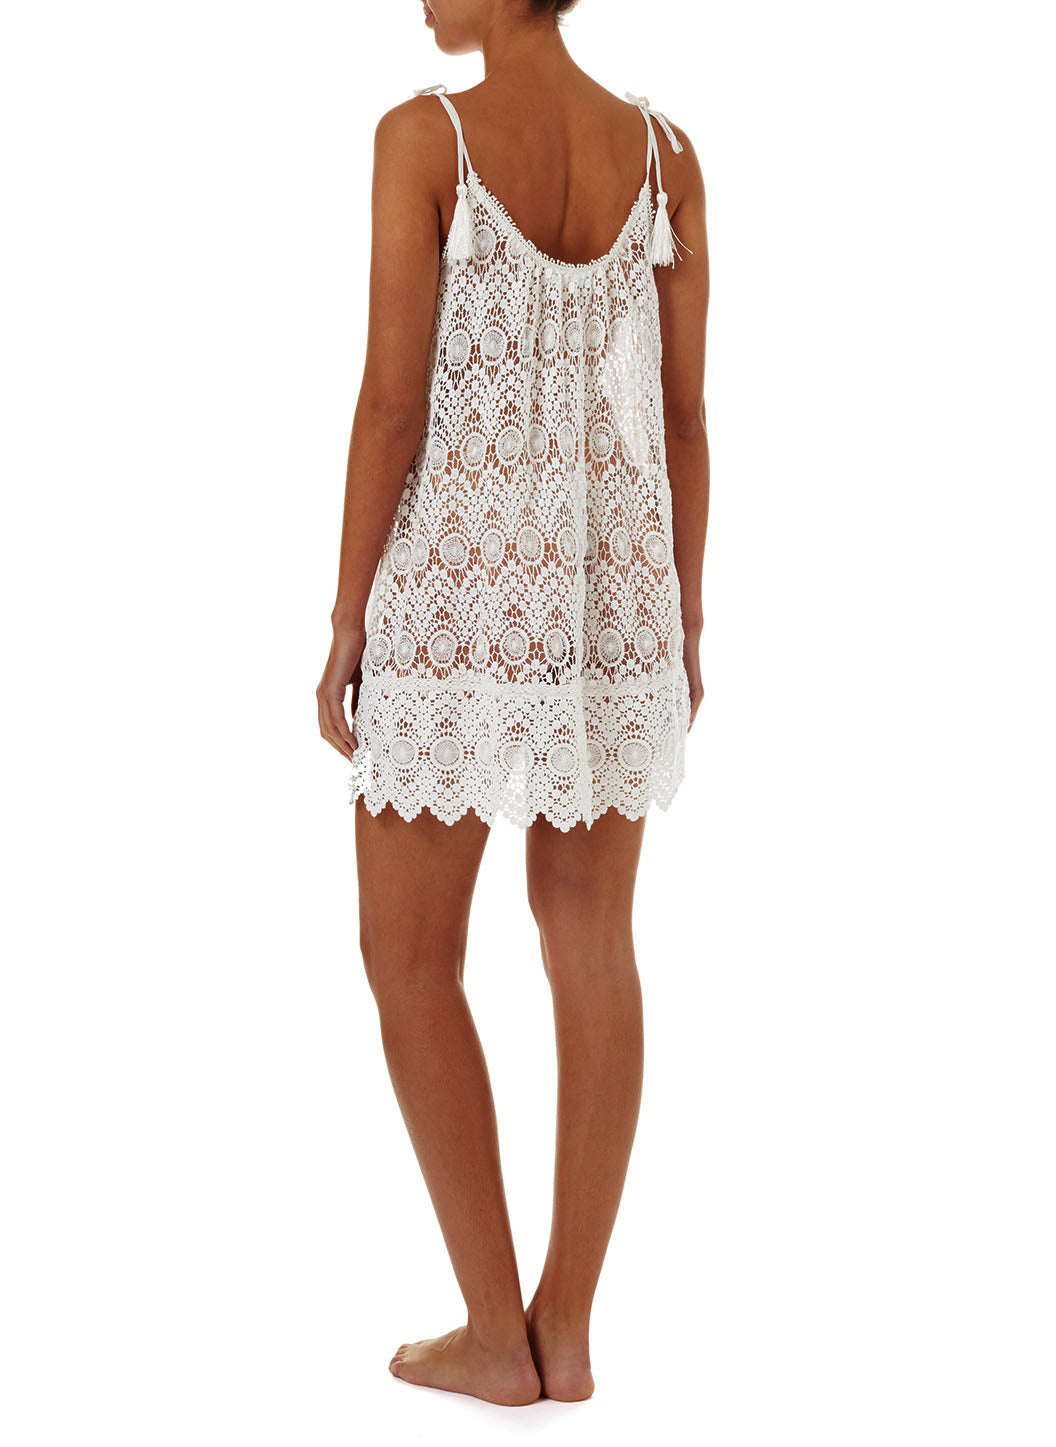 Ana Cream Lace Short Tie-Shoulder Beach Dress